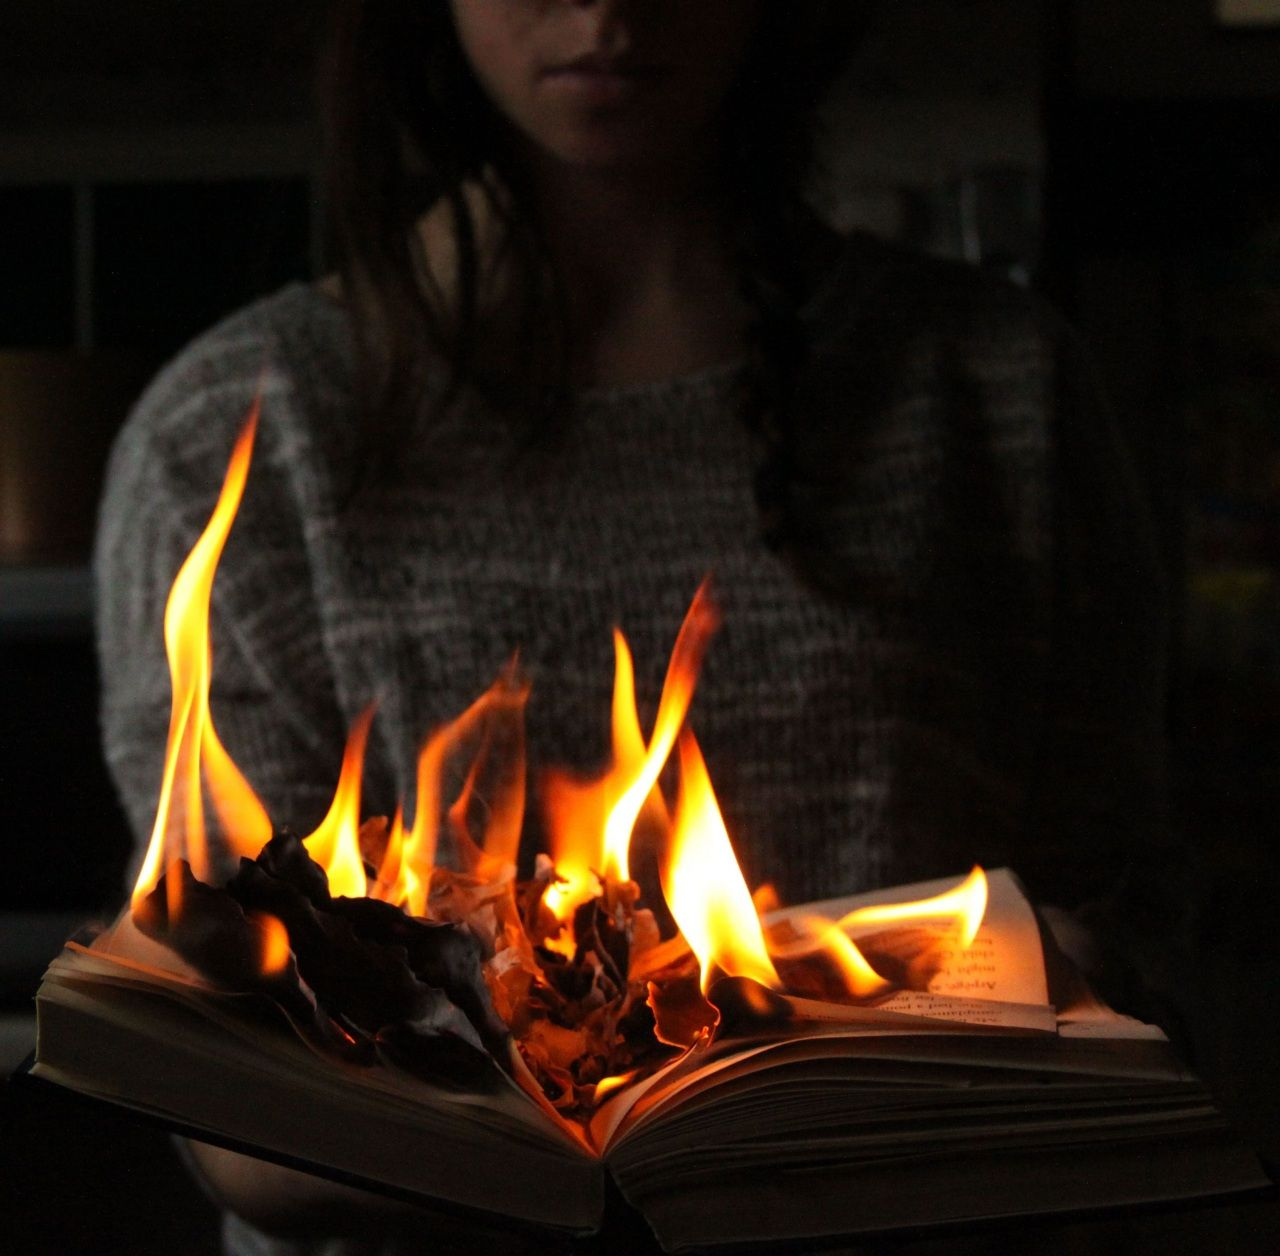 Burning Paper Aesthetic In 2020 Fire Photography Creative Photography Photography Inspo